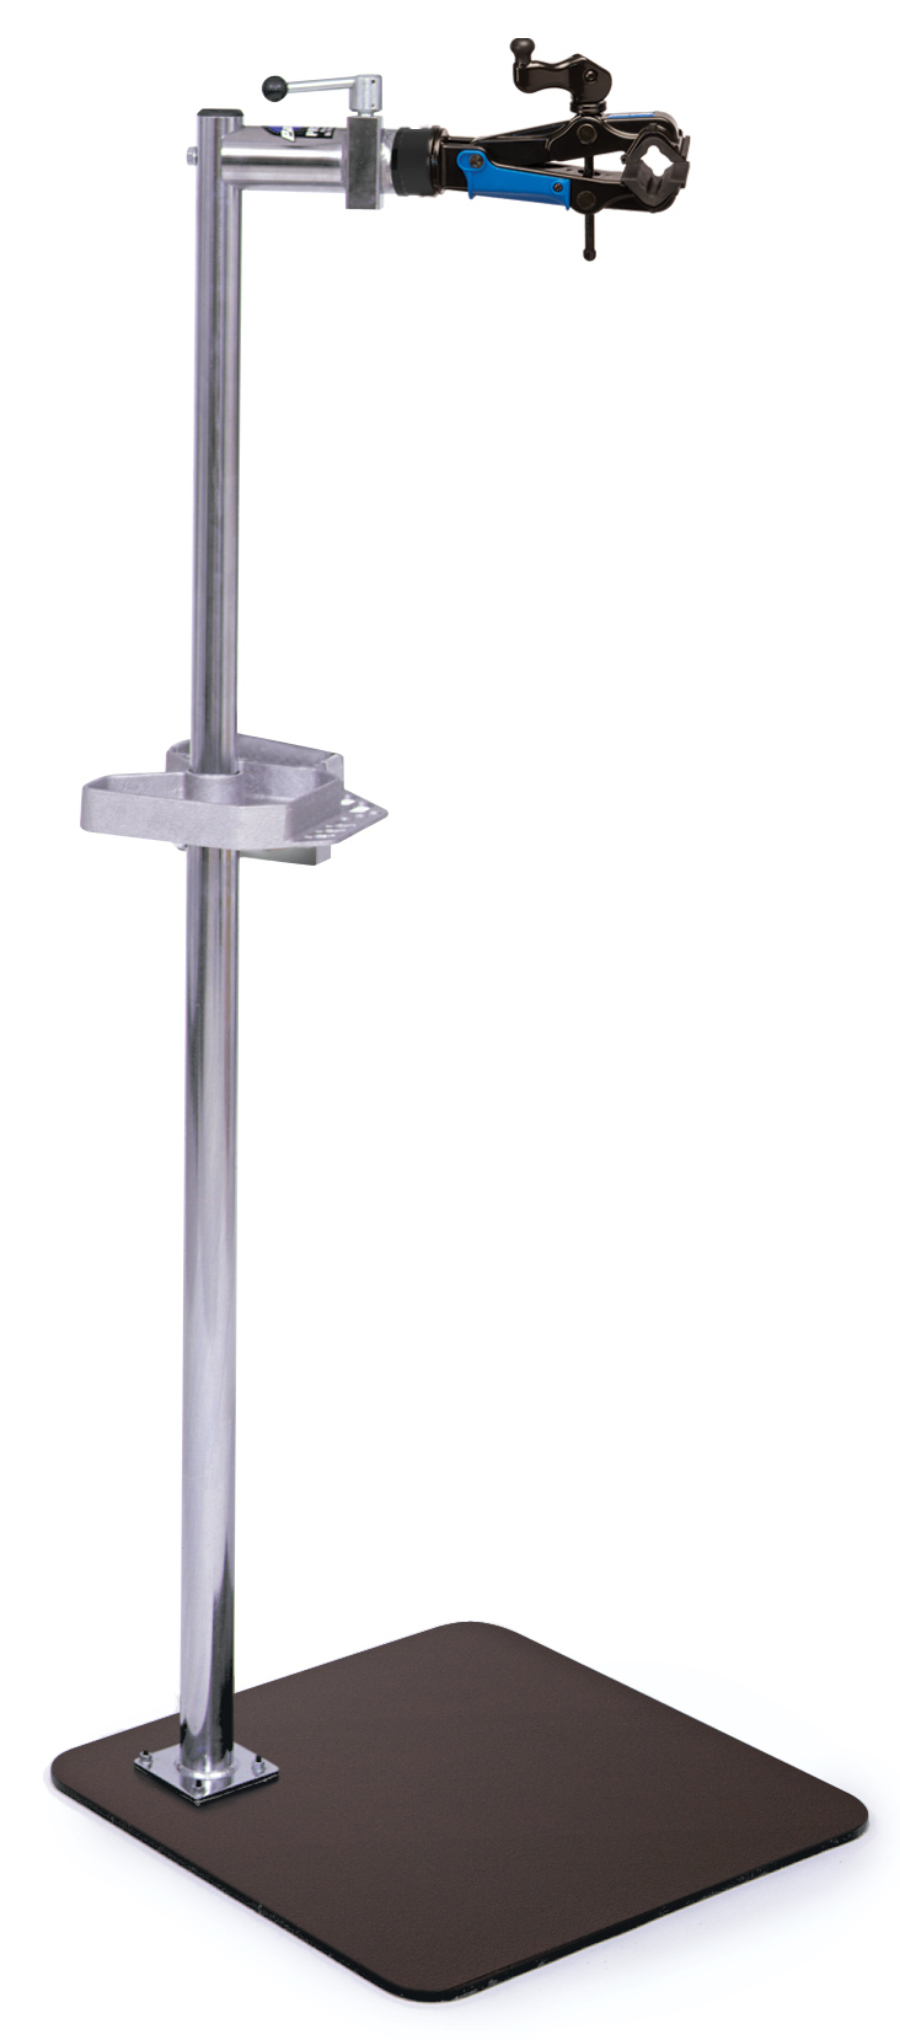 The Park Tool PRS-3OS-2 Deluxe Single Arm Repair Stand, enlarged